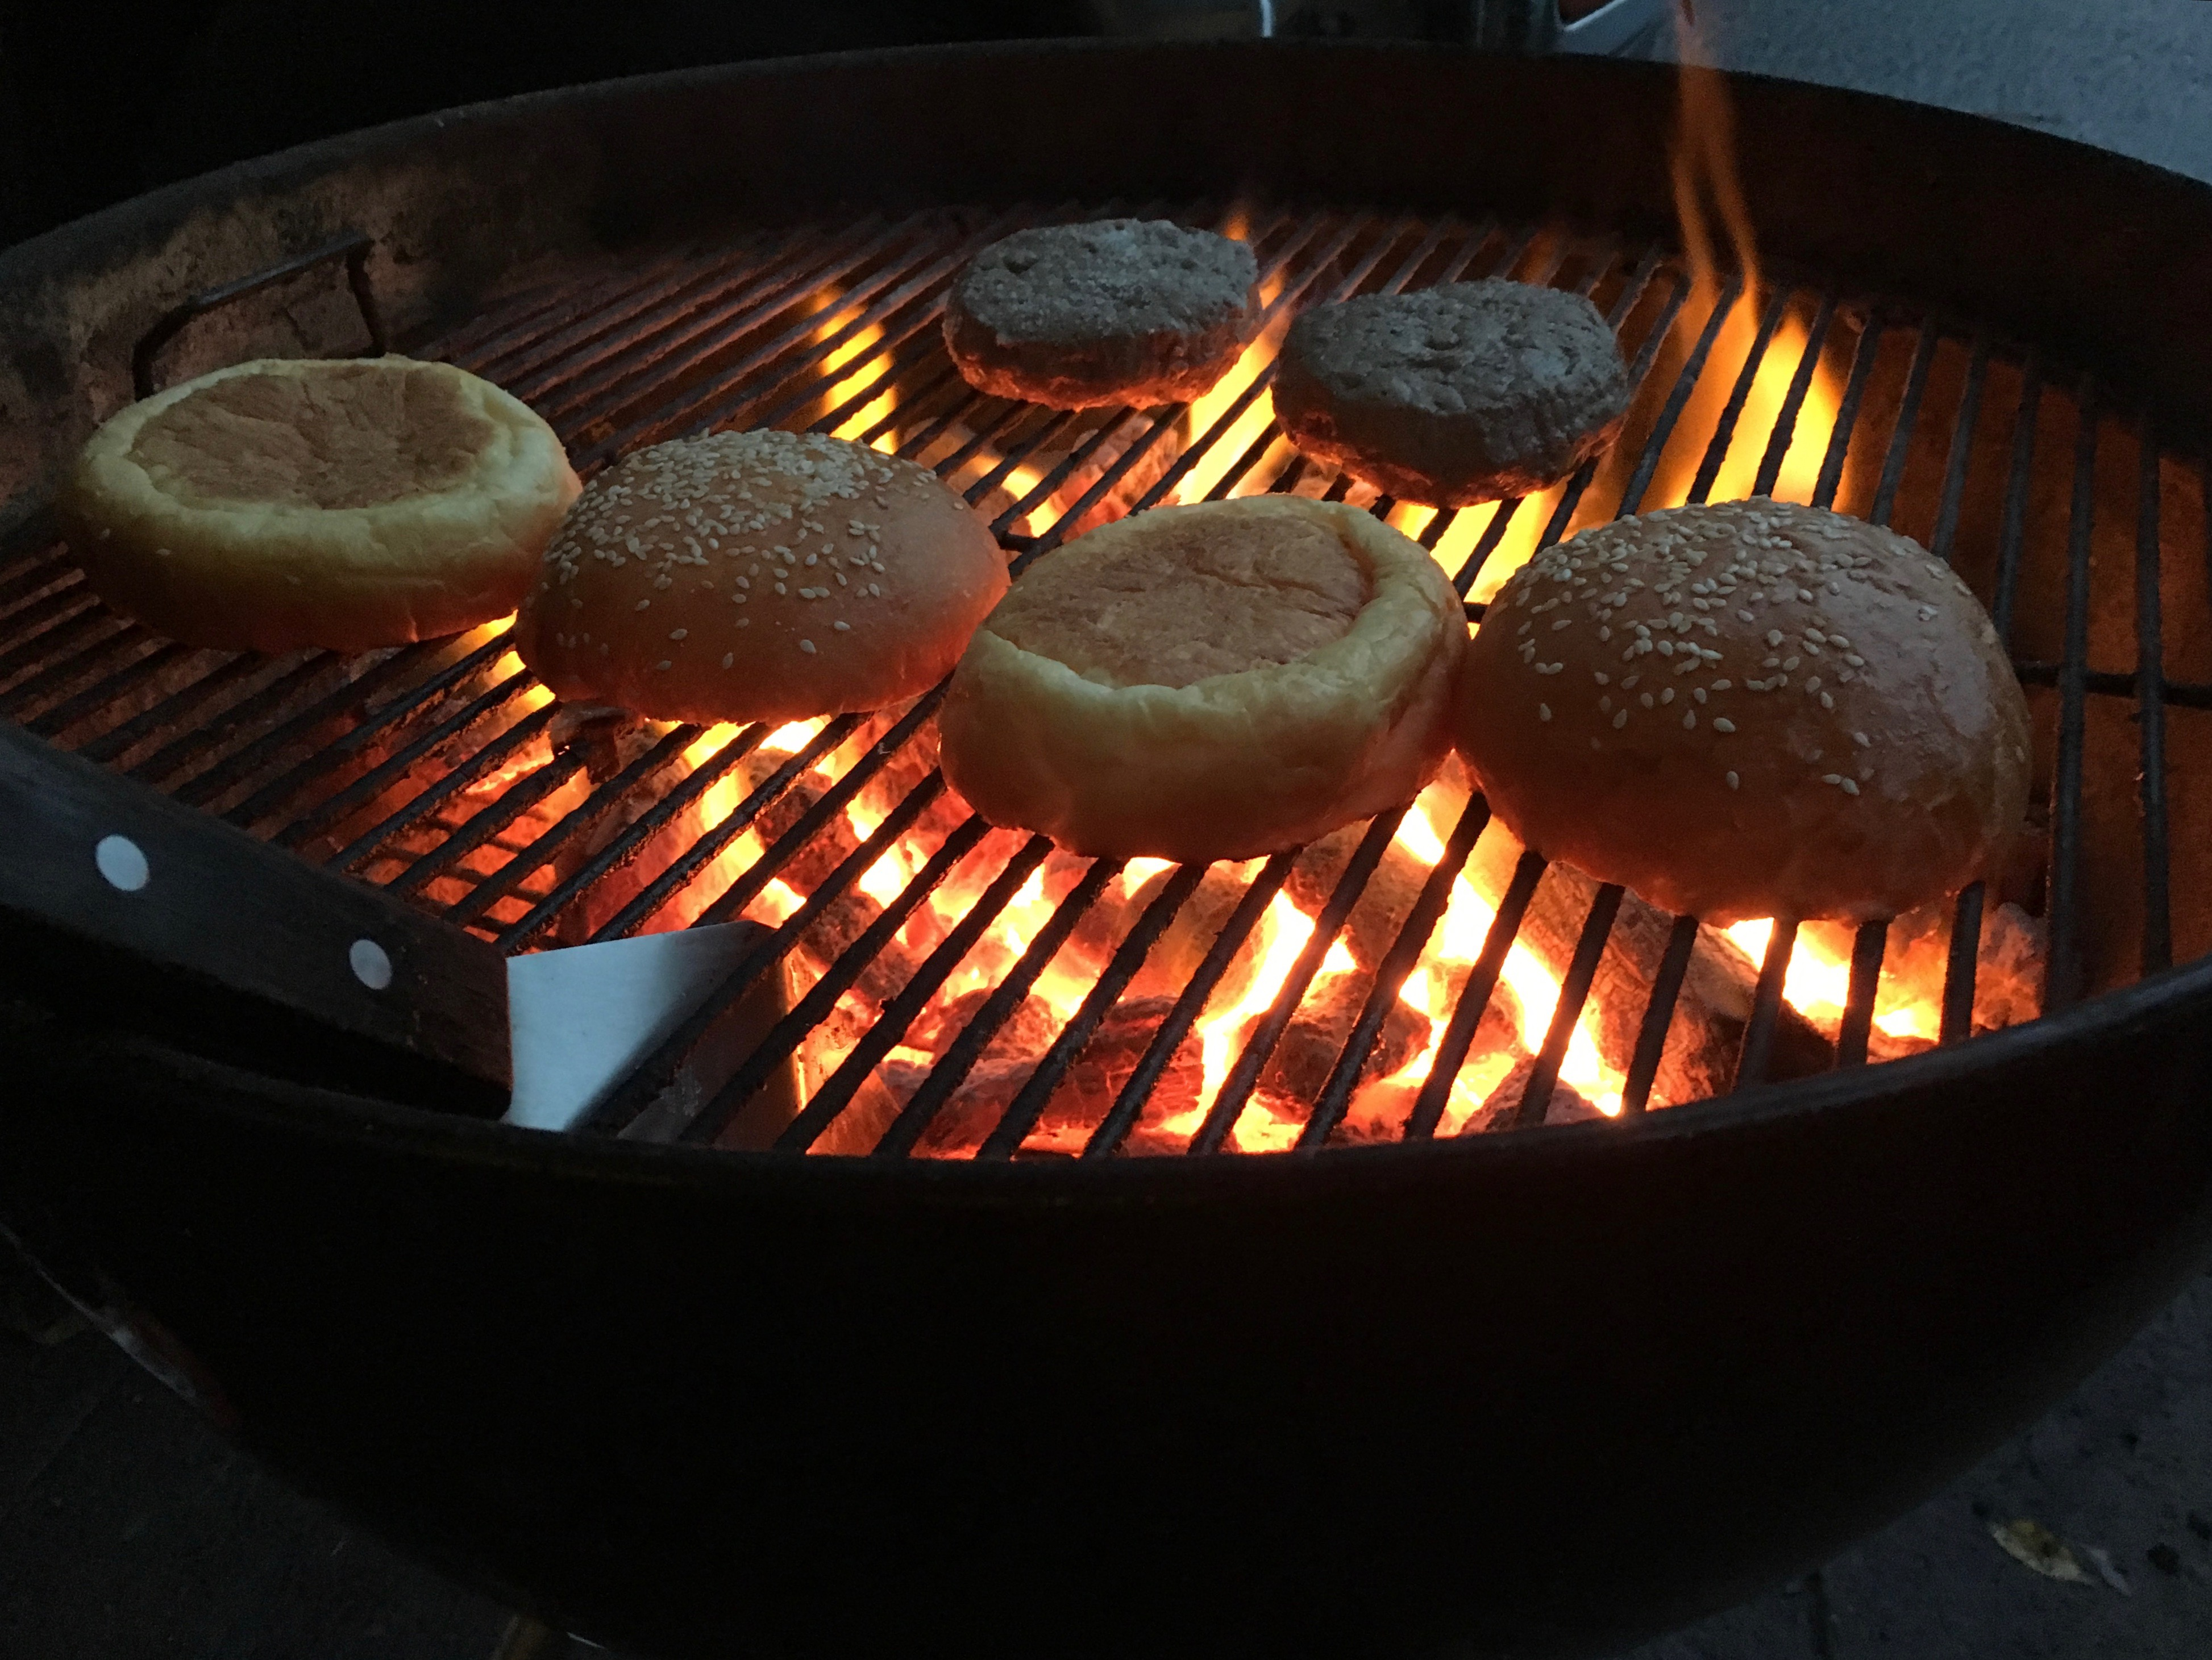 Searing the sous vide burgers at N.W.I.P.A. on a Burger Mondays night.